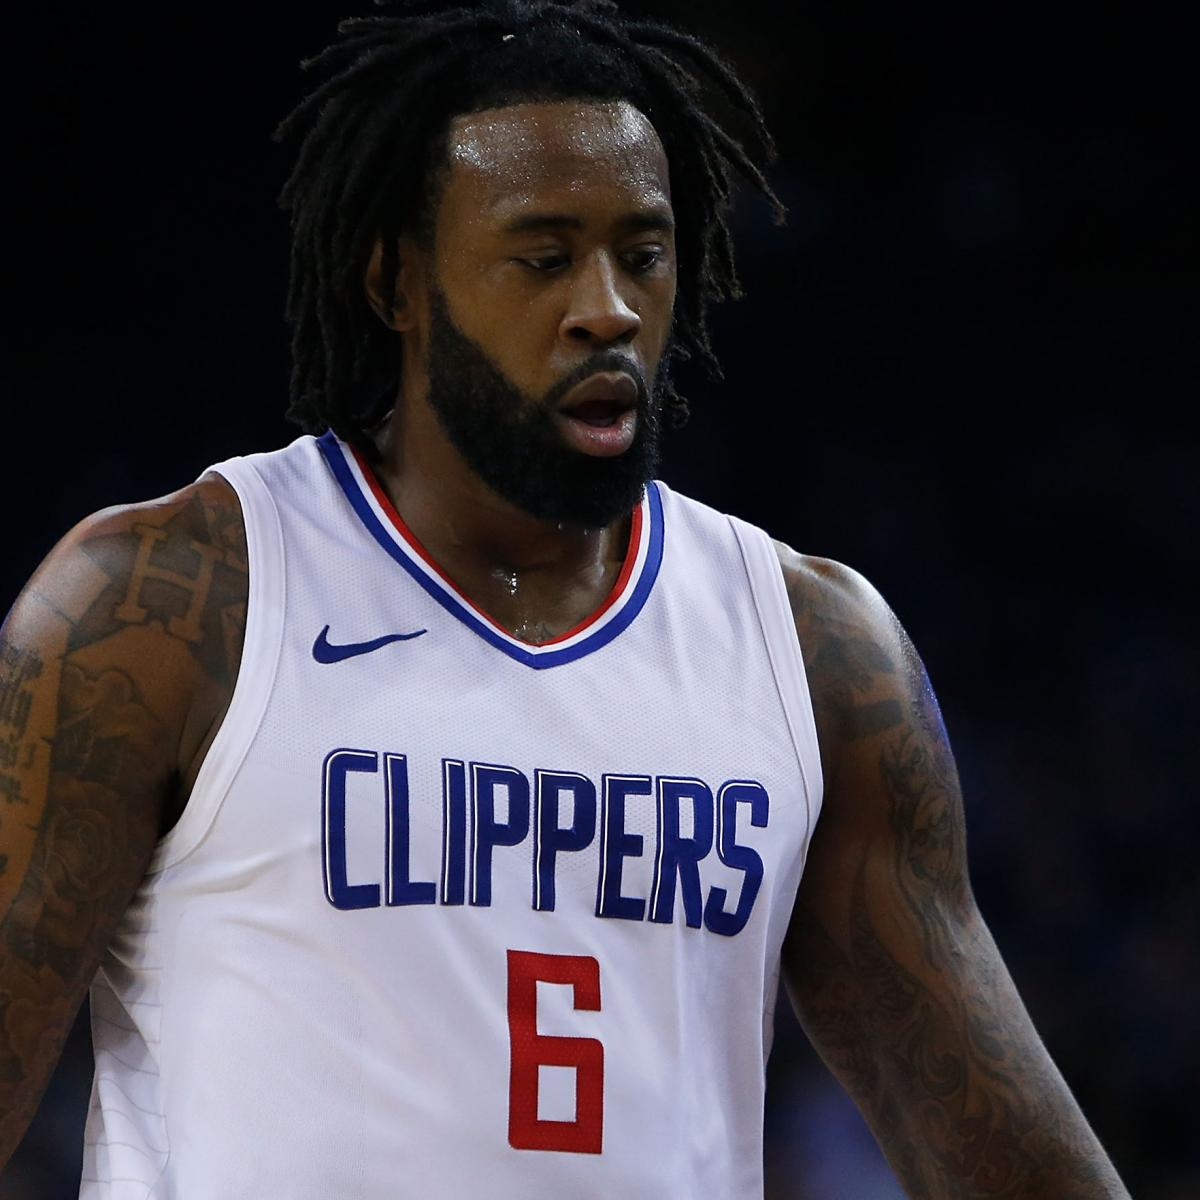 Nuggets Clippers Highlights: Los Angeles Clippers Vs. Denver Nuggets Odds, Analysis